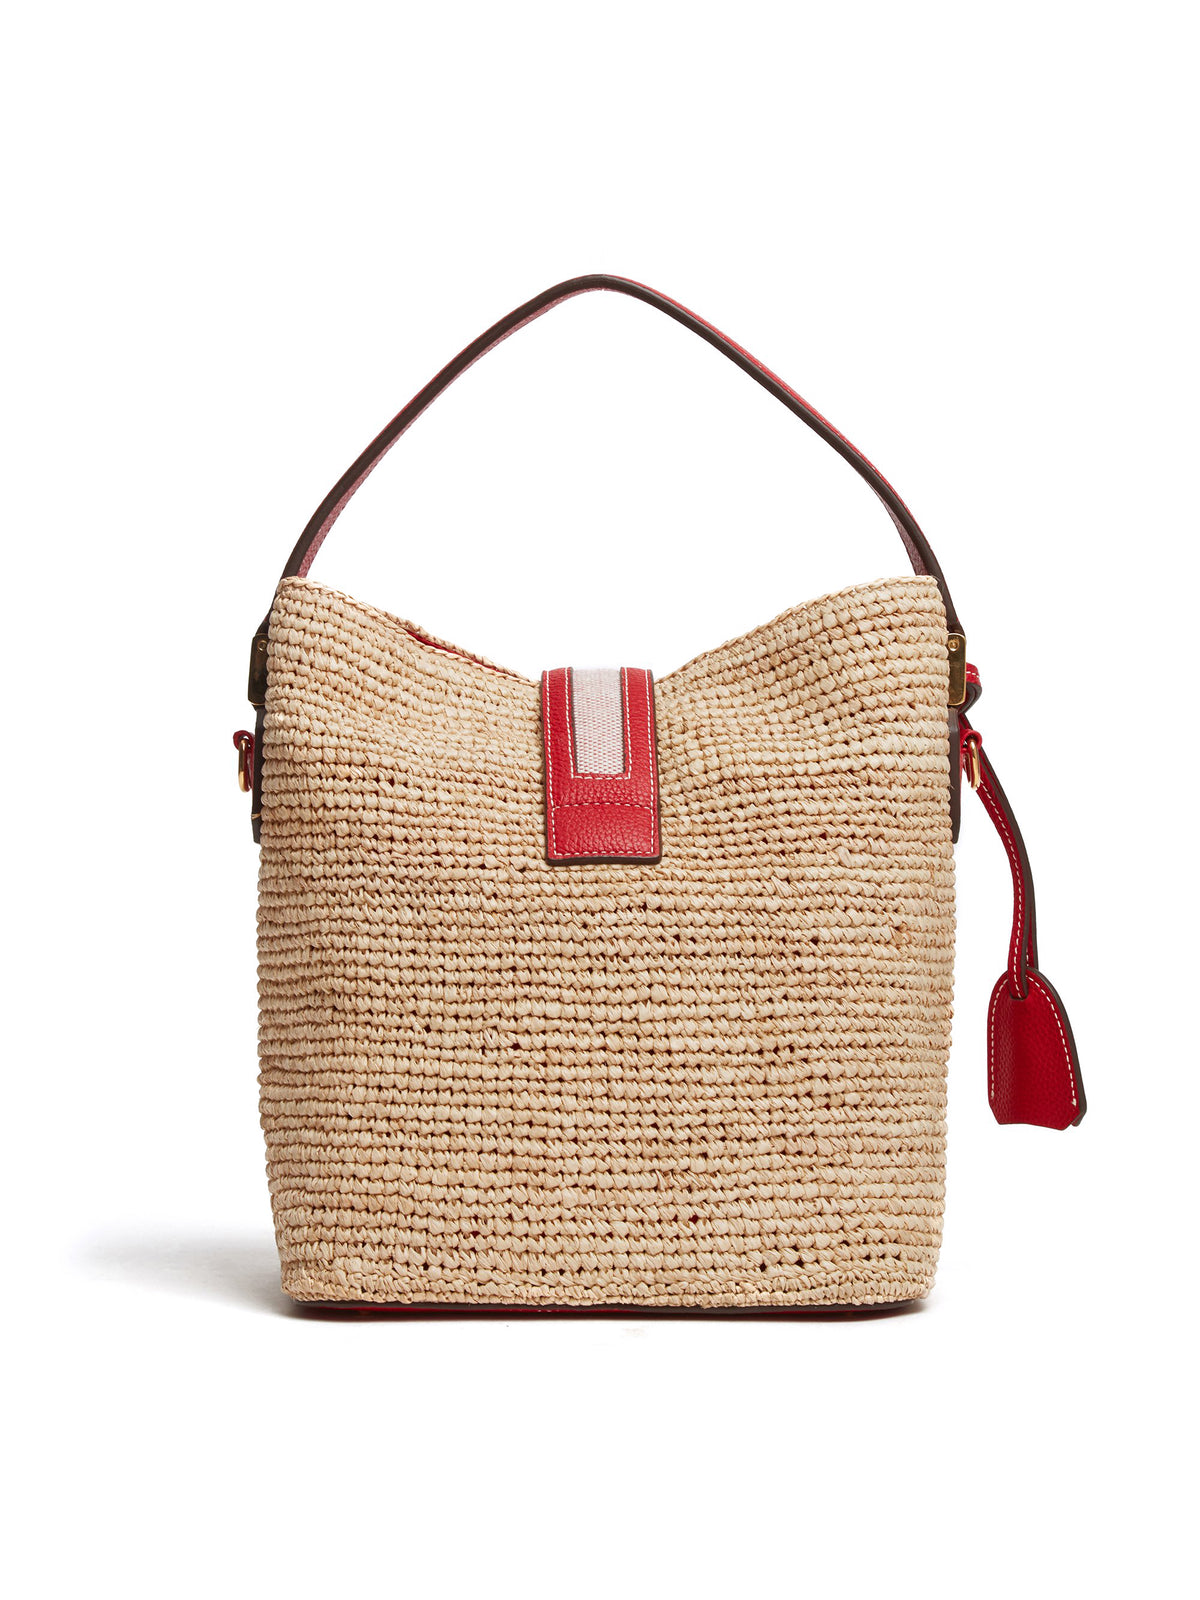 Mark Cross Murphy Raffia & Leather Bucket Bag Tumbled Grain Mc Red / Birdseye / Natural Raffia Back